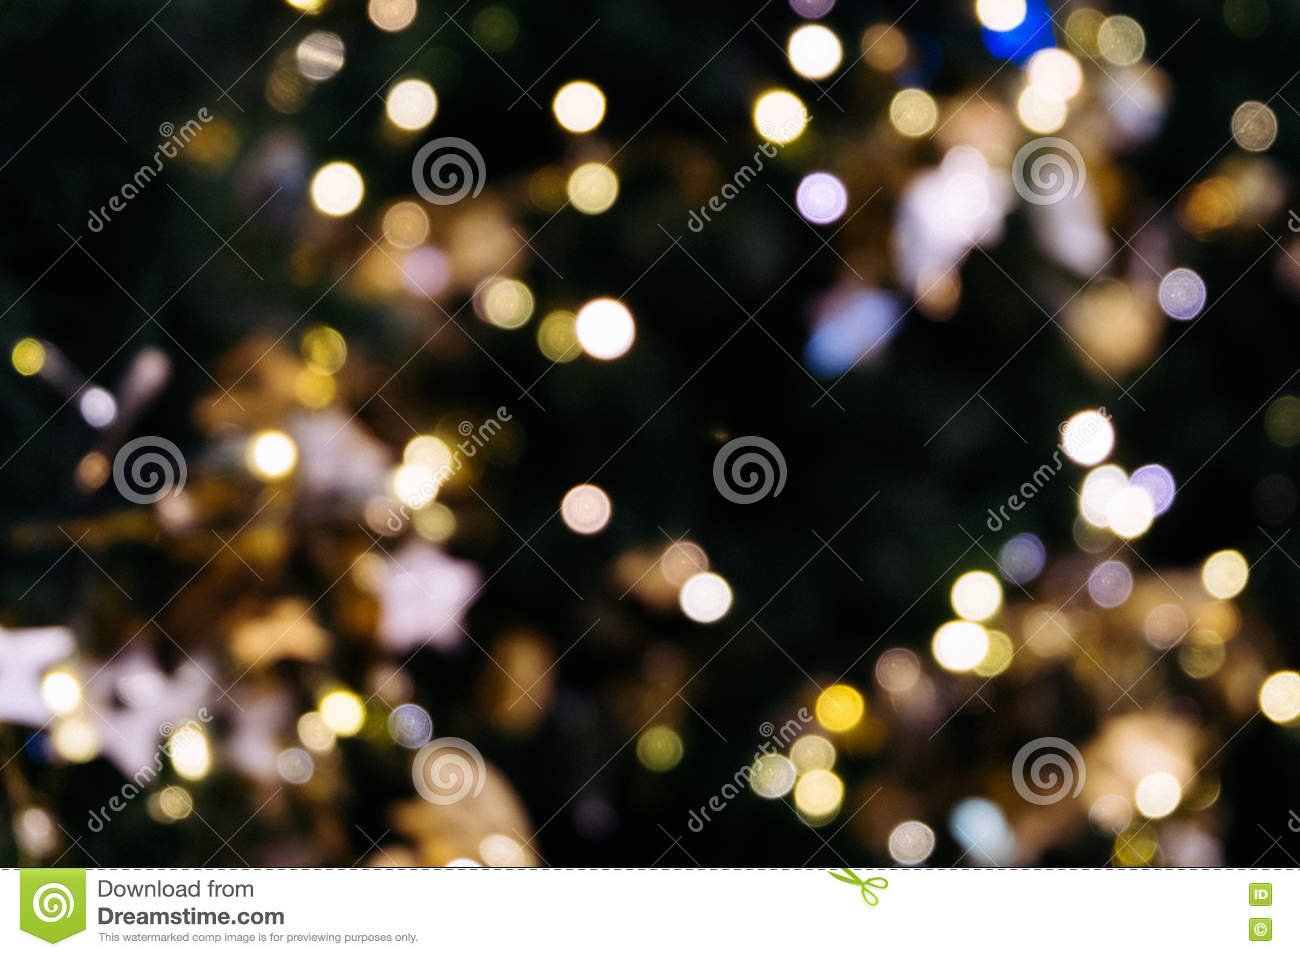 Christmas tree bokeh light in green yellow golden color, holiday abstract background, blur defocused with grain hipster color.